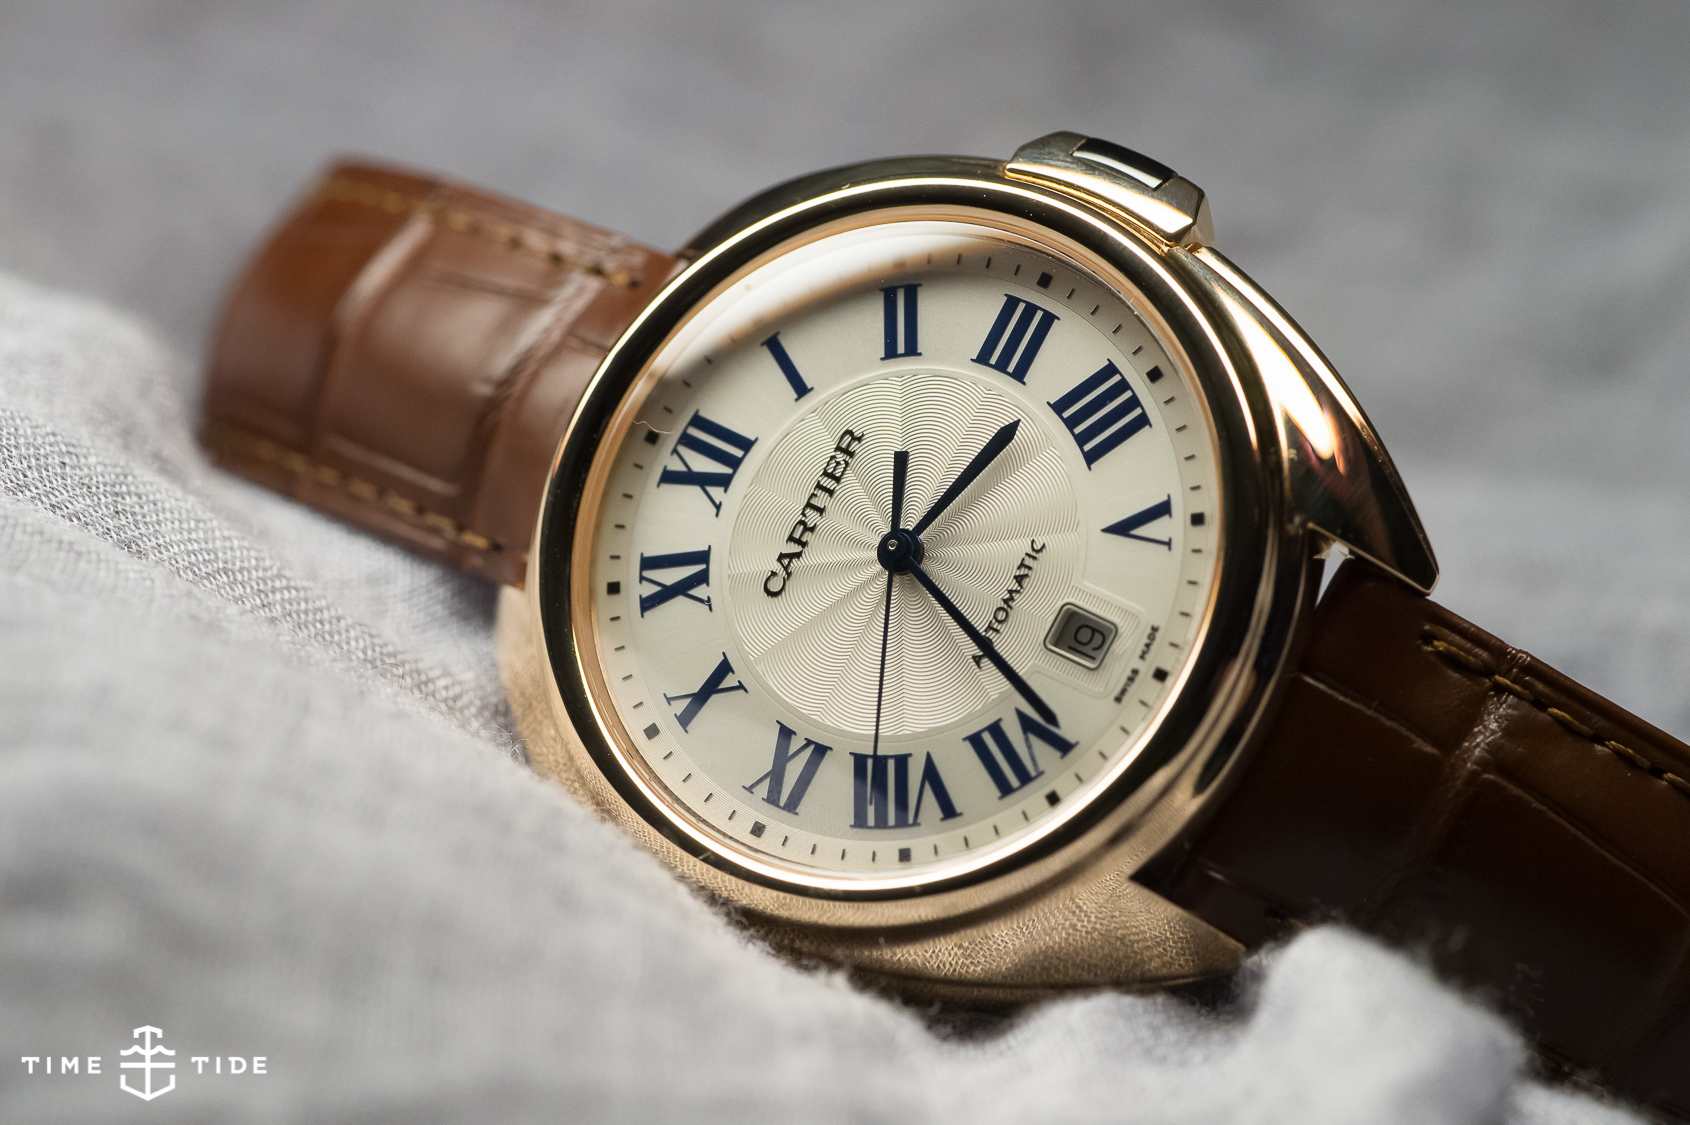 Cartier Clé de Cartier – Hands On Review